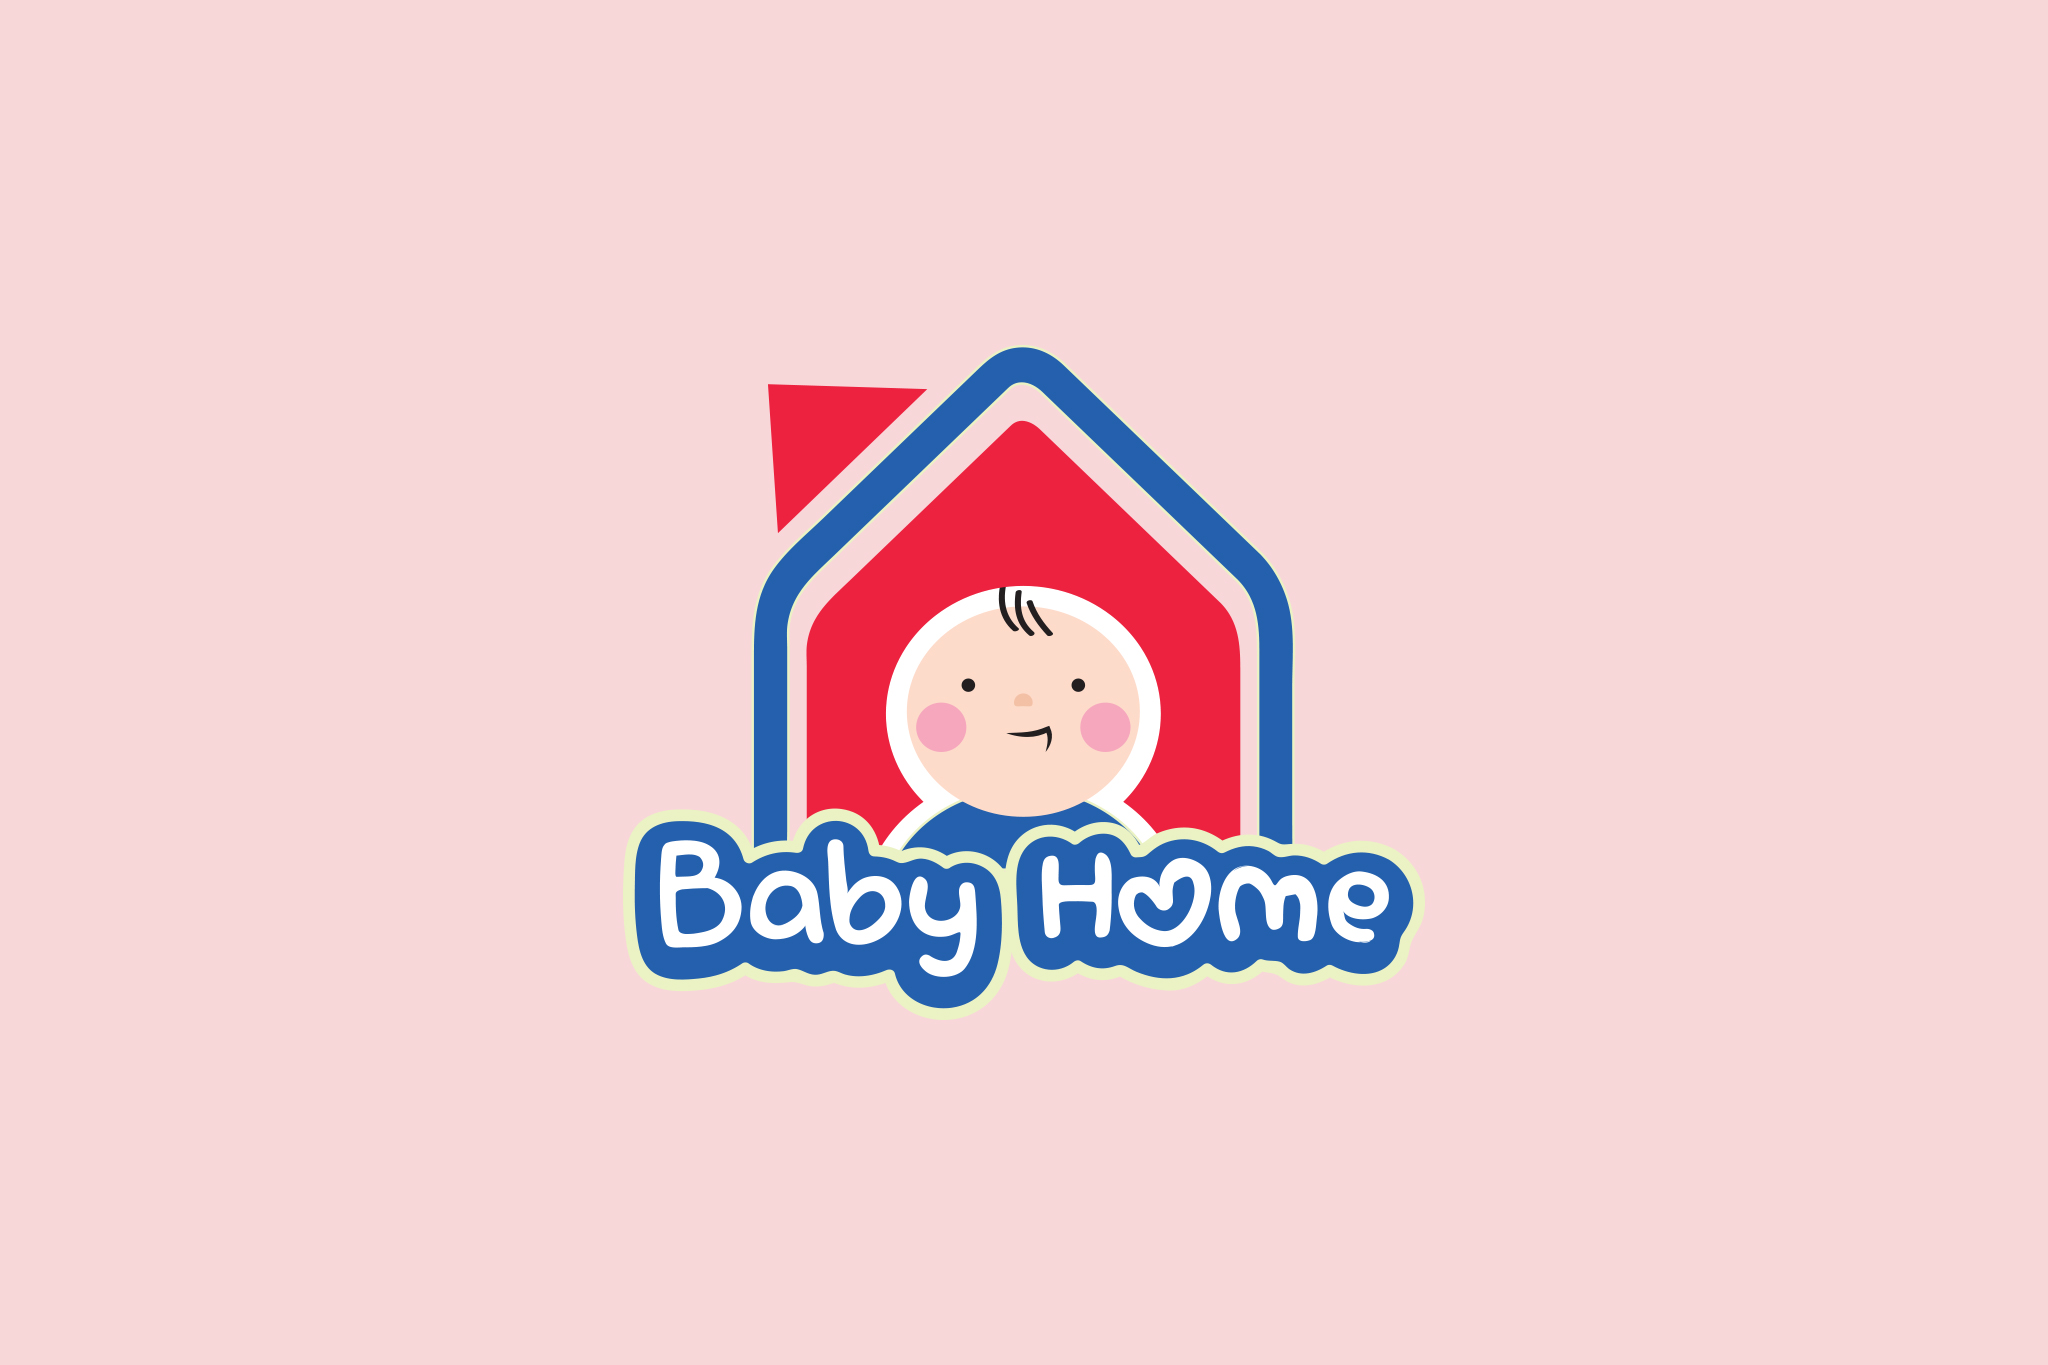 THIẾT KẾ LOGO BABY HOME